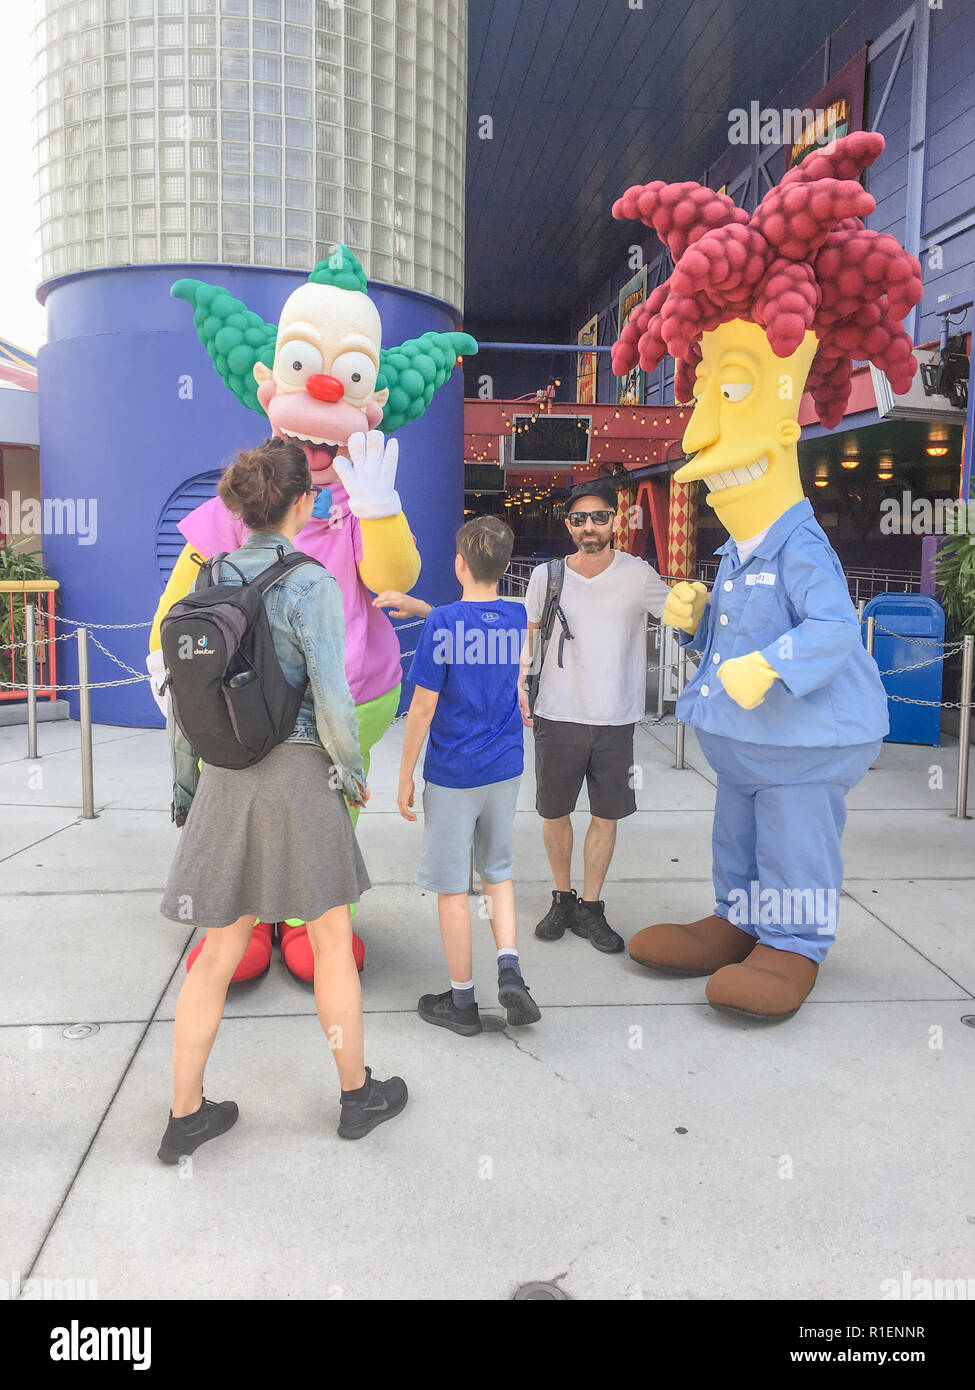 APRIL 25, 2018 - ORLANDO, FLORIDA: FAMILY POSES WITH SIMPSON CHARACTERS AT UNIVERSAL STUDIOS. - Stock Image